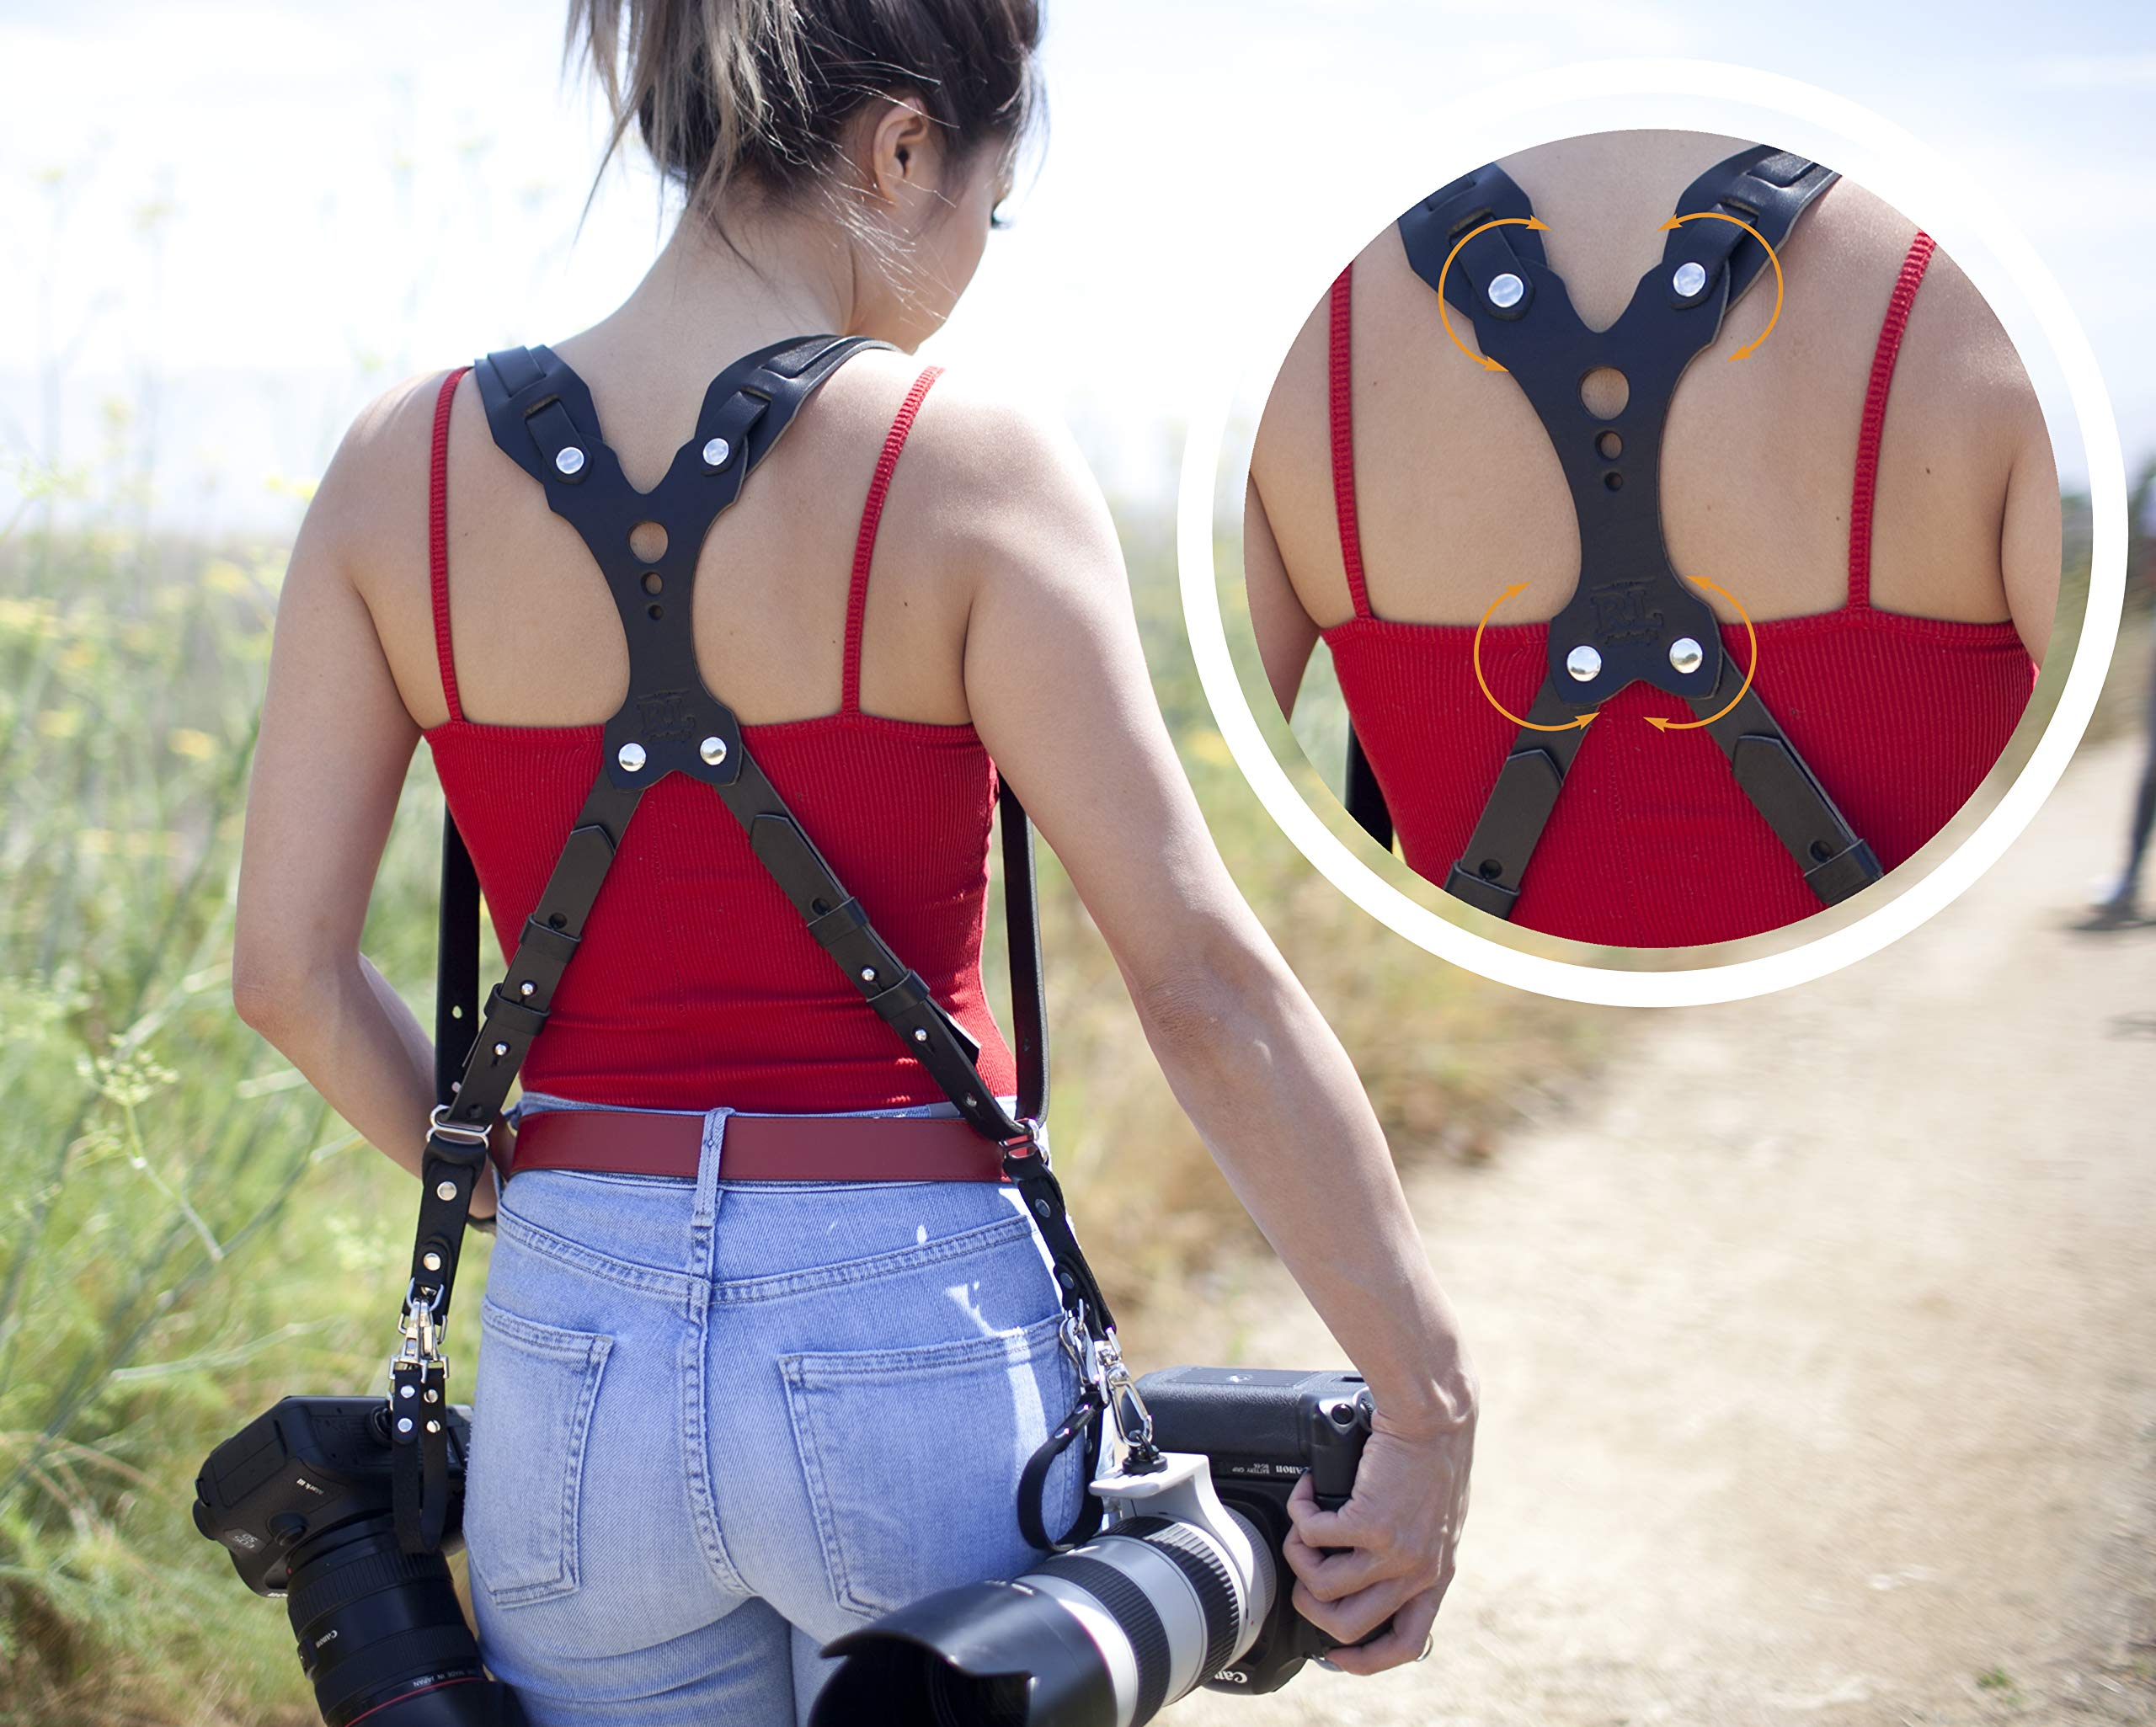 Clydesdale Lite-Dual Handmade Leather Camera Harness, Sling & Strap RL Handcrafts. DLSR, Mirrorless, Point & Shoot Made in The USA (Black, X-Large)